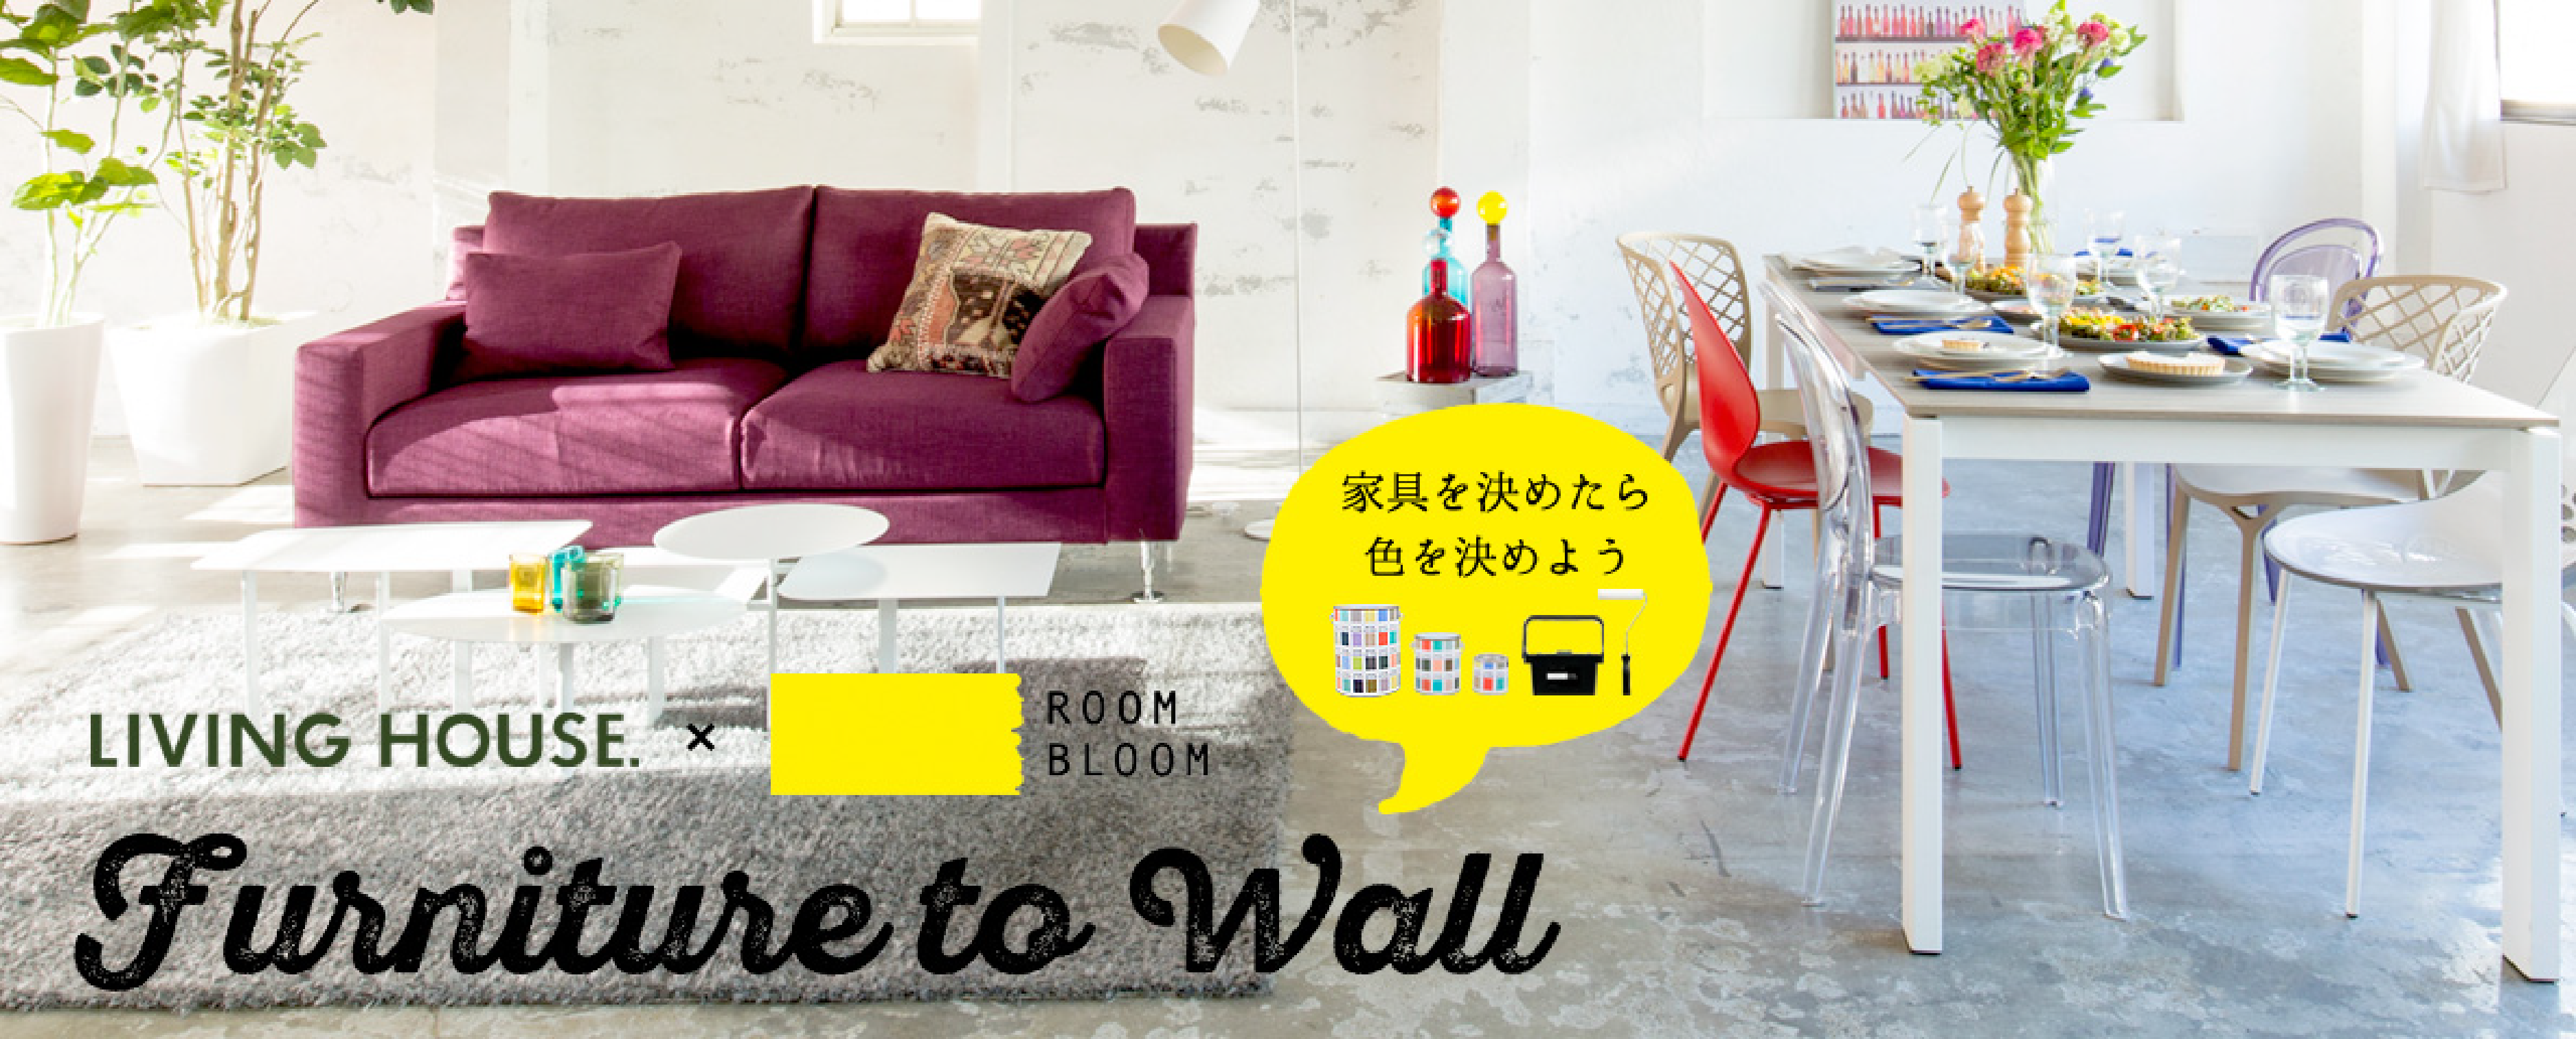 LIVING HOUSE. x ROOMBLOOM Furniture to Wall